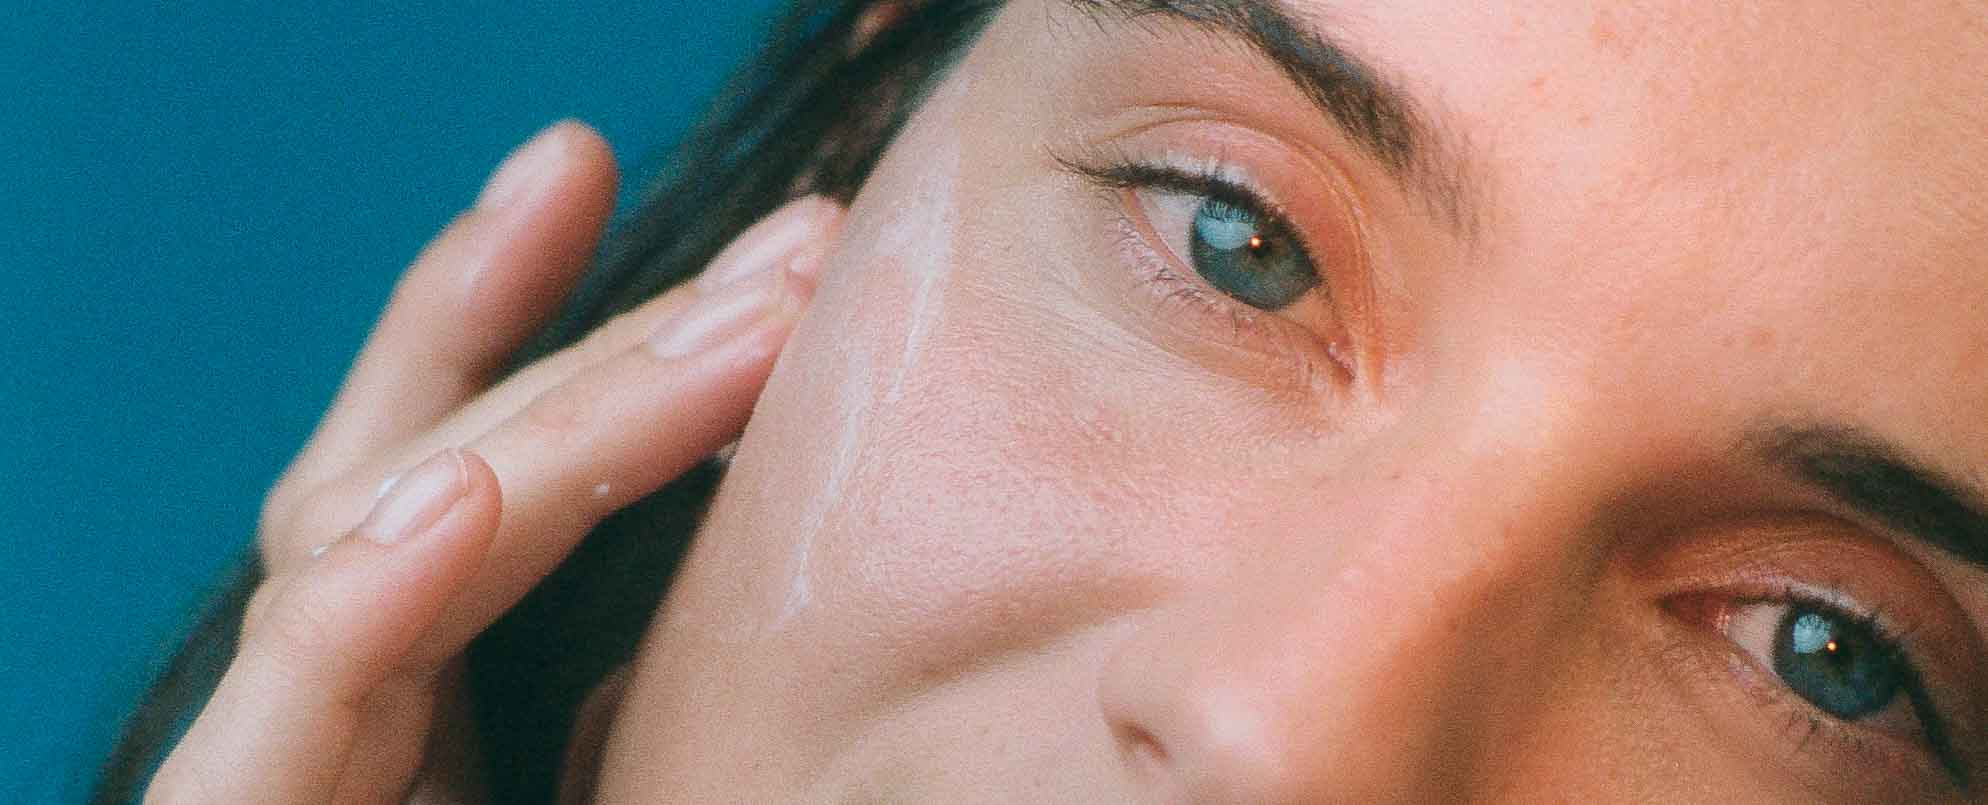 So You Have Hard Pimples: Here's Why